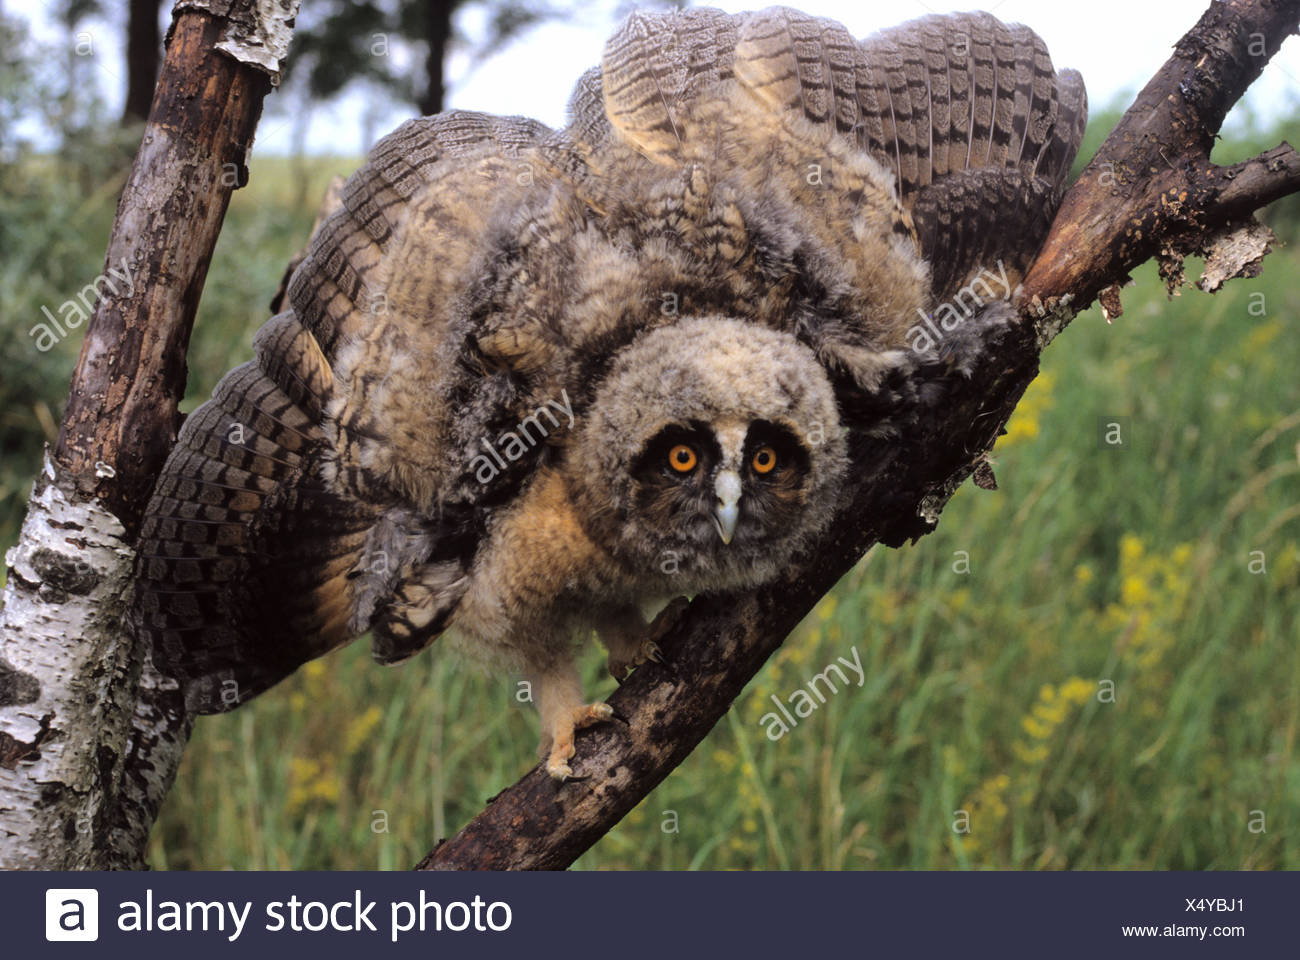 Long-eared Owl (Asio otus) Genus Asio, fledgling, threatening gesture - Stock Image